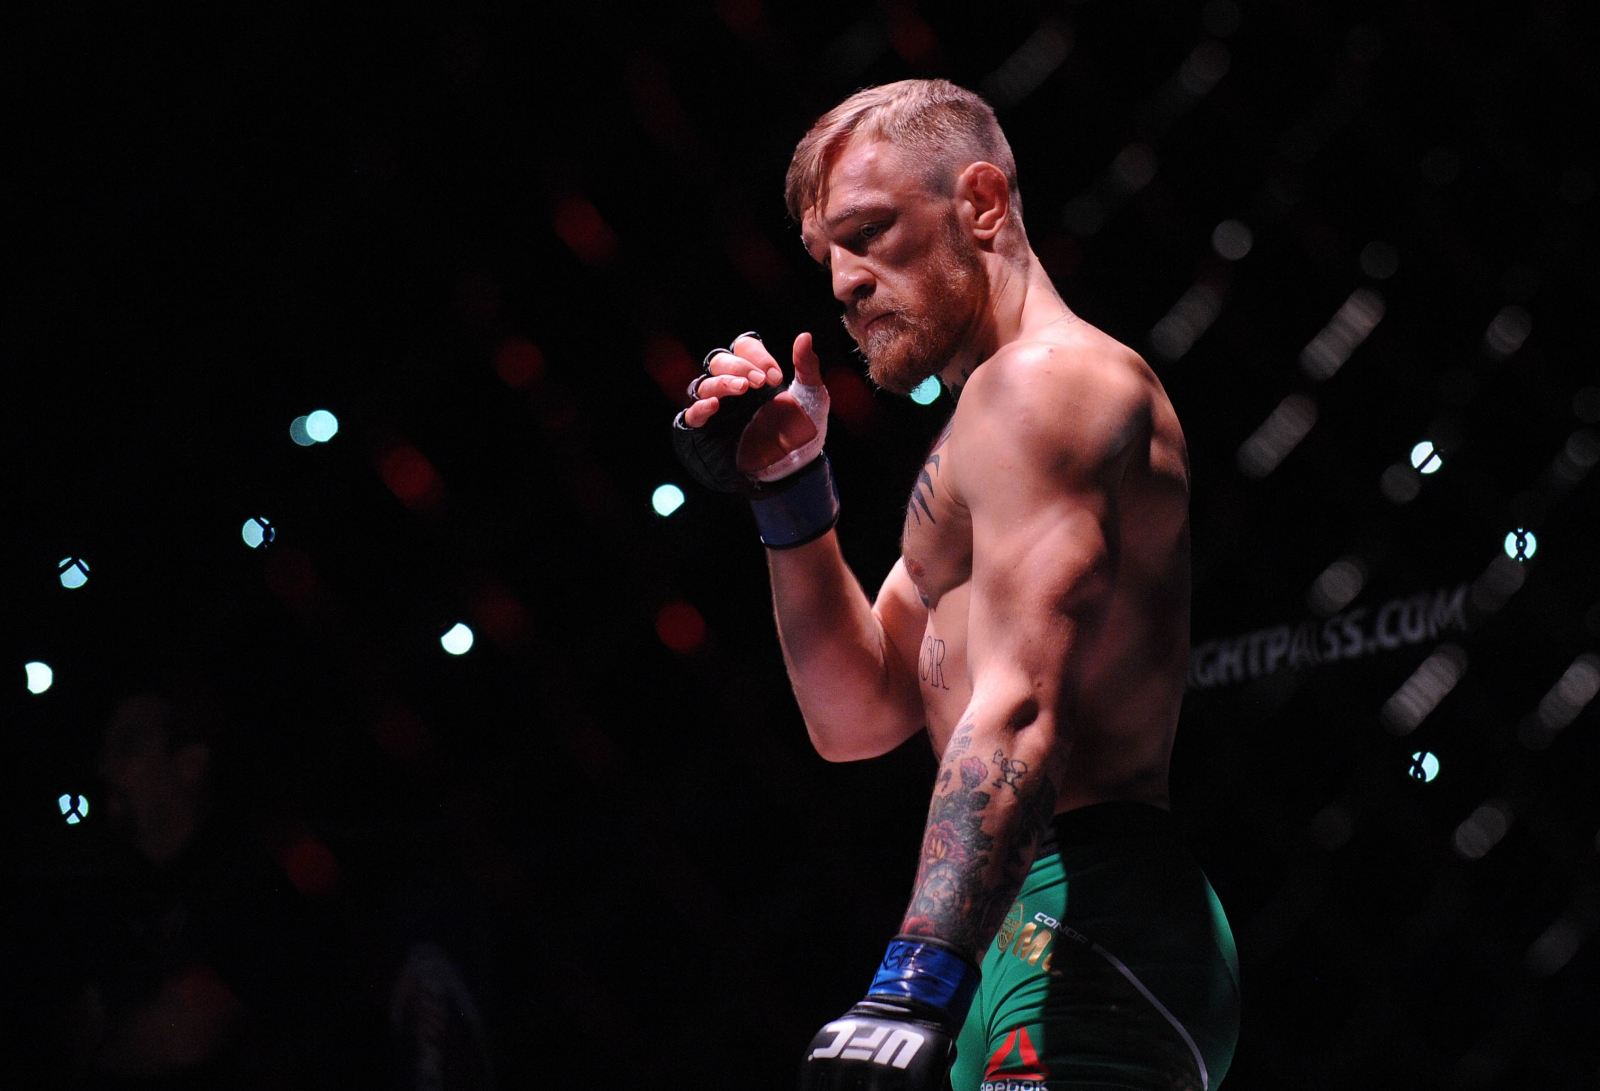 conor mcgregor - photo #36